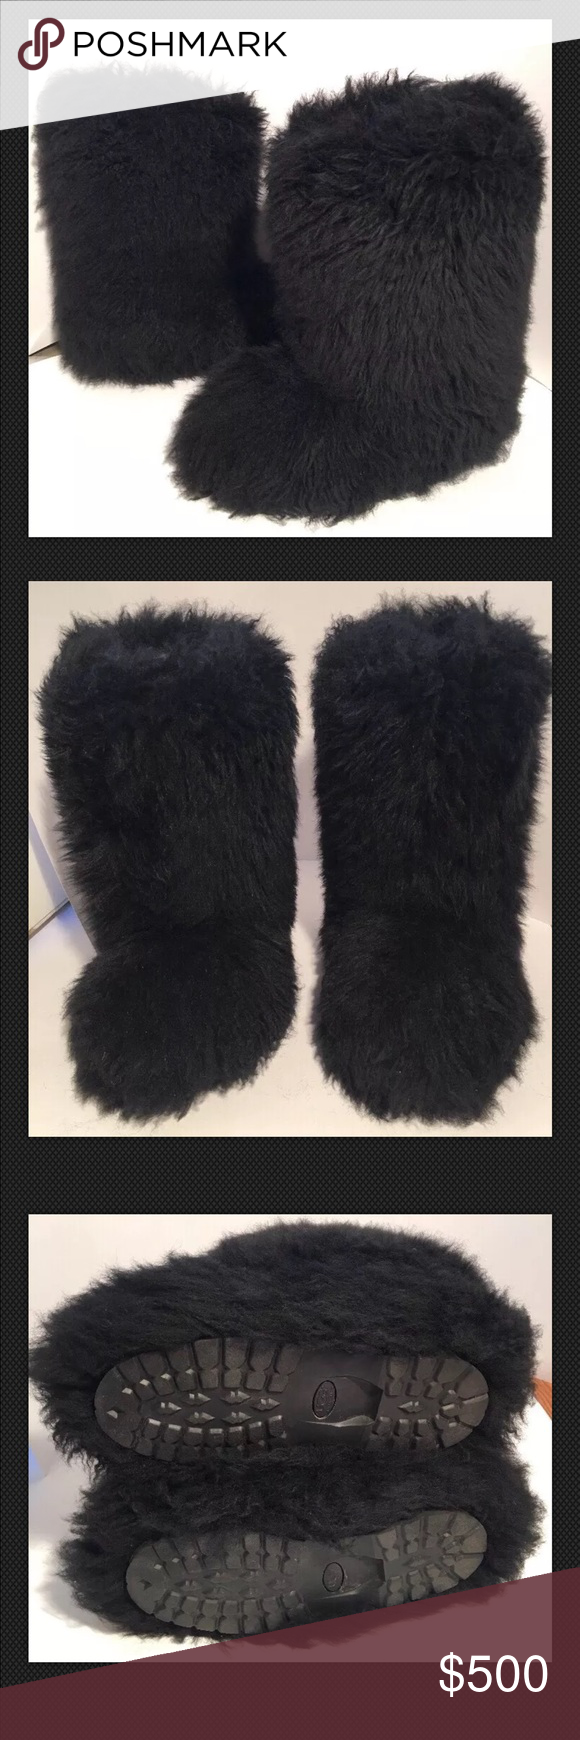 3414686d8c1 hot ugg fluff momma fur boots 5582f d6243